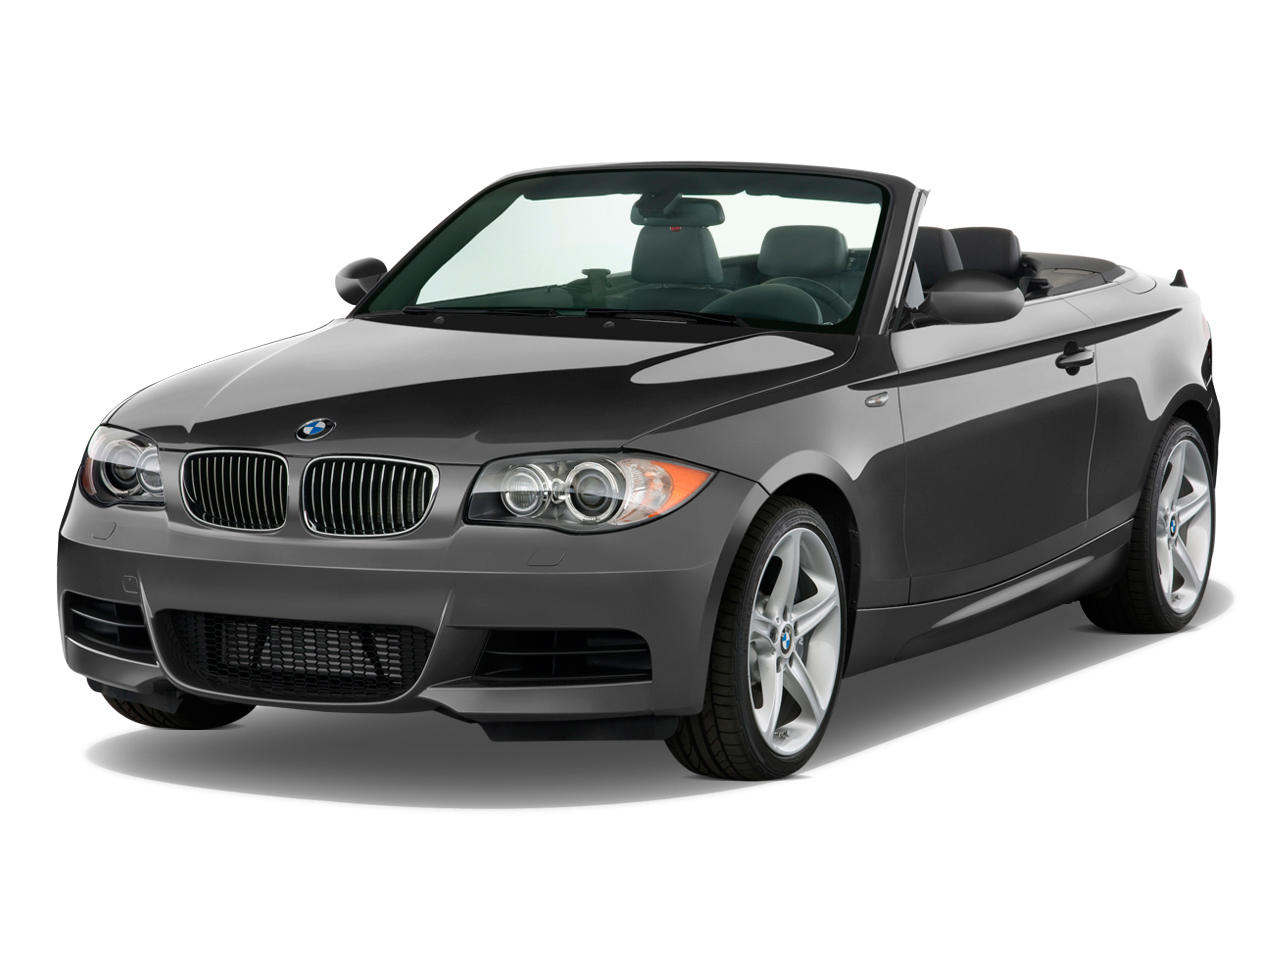 2010 bmw 1 series review ratings specs prices and. Black Bedroom Furniture Sets. Home Design Ideas